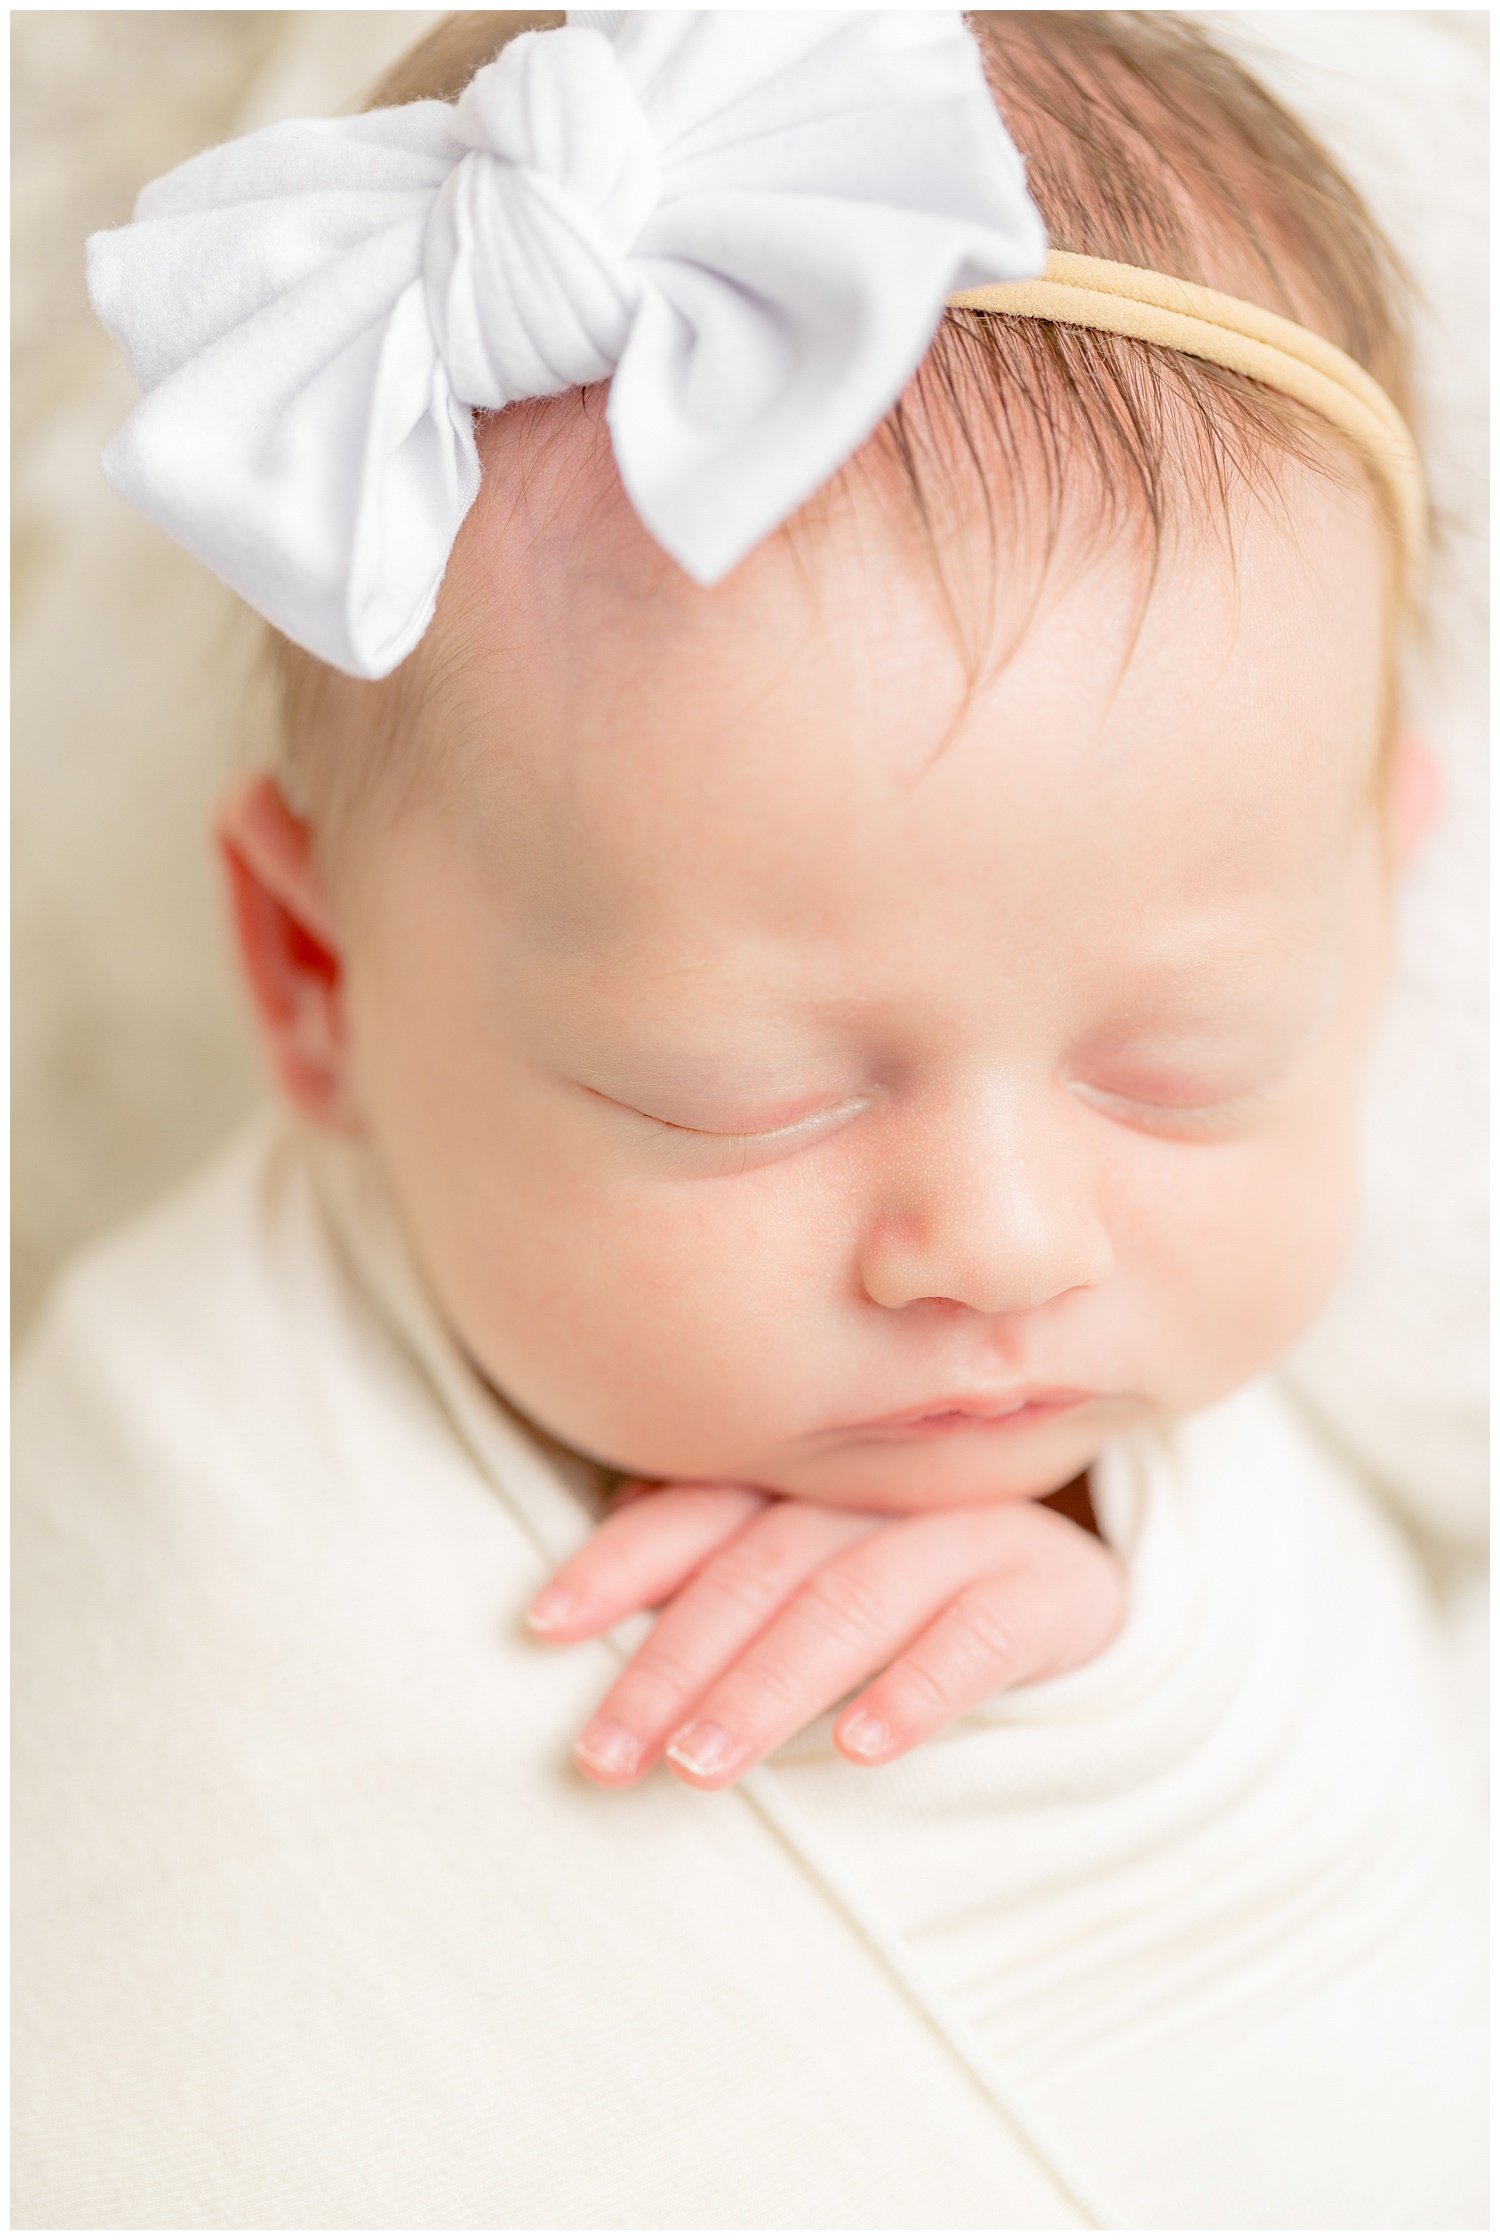 Newborn baby girl wrapped in ivory stretch fabric resting her chin gently on her hand while wearing a white bow headband. | CB Studio